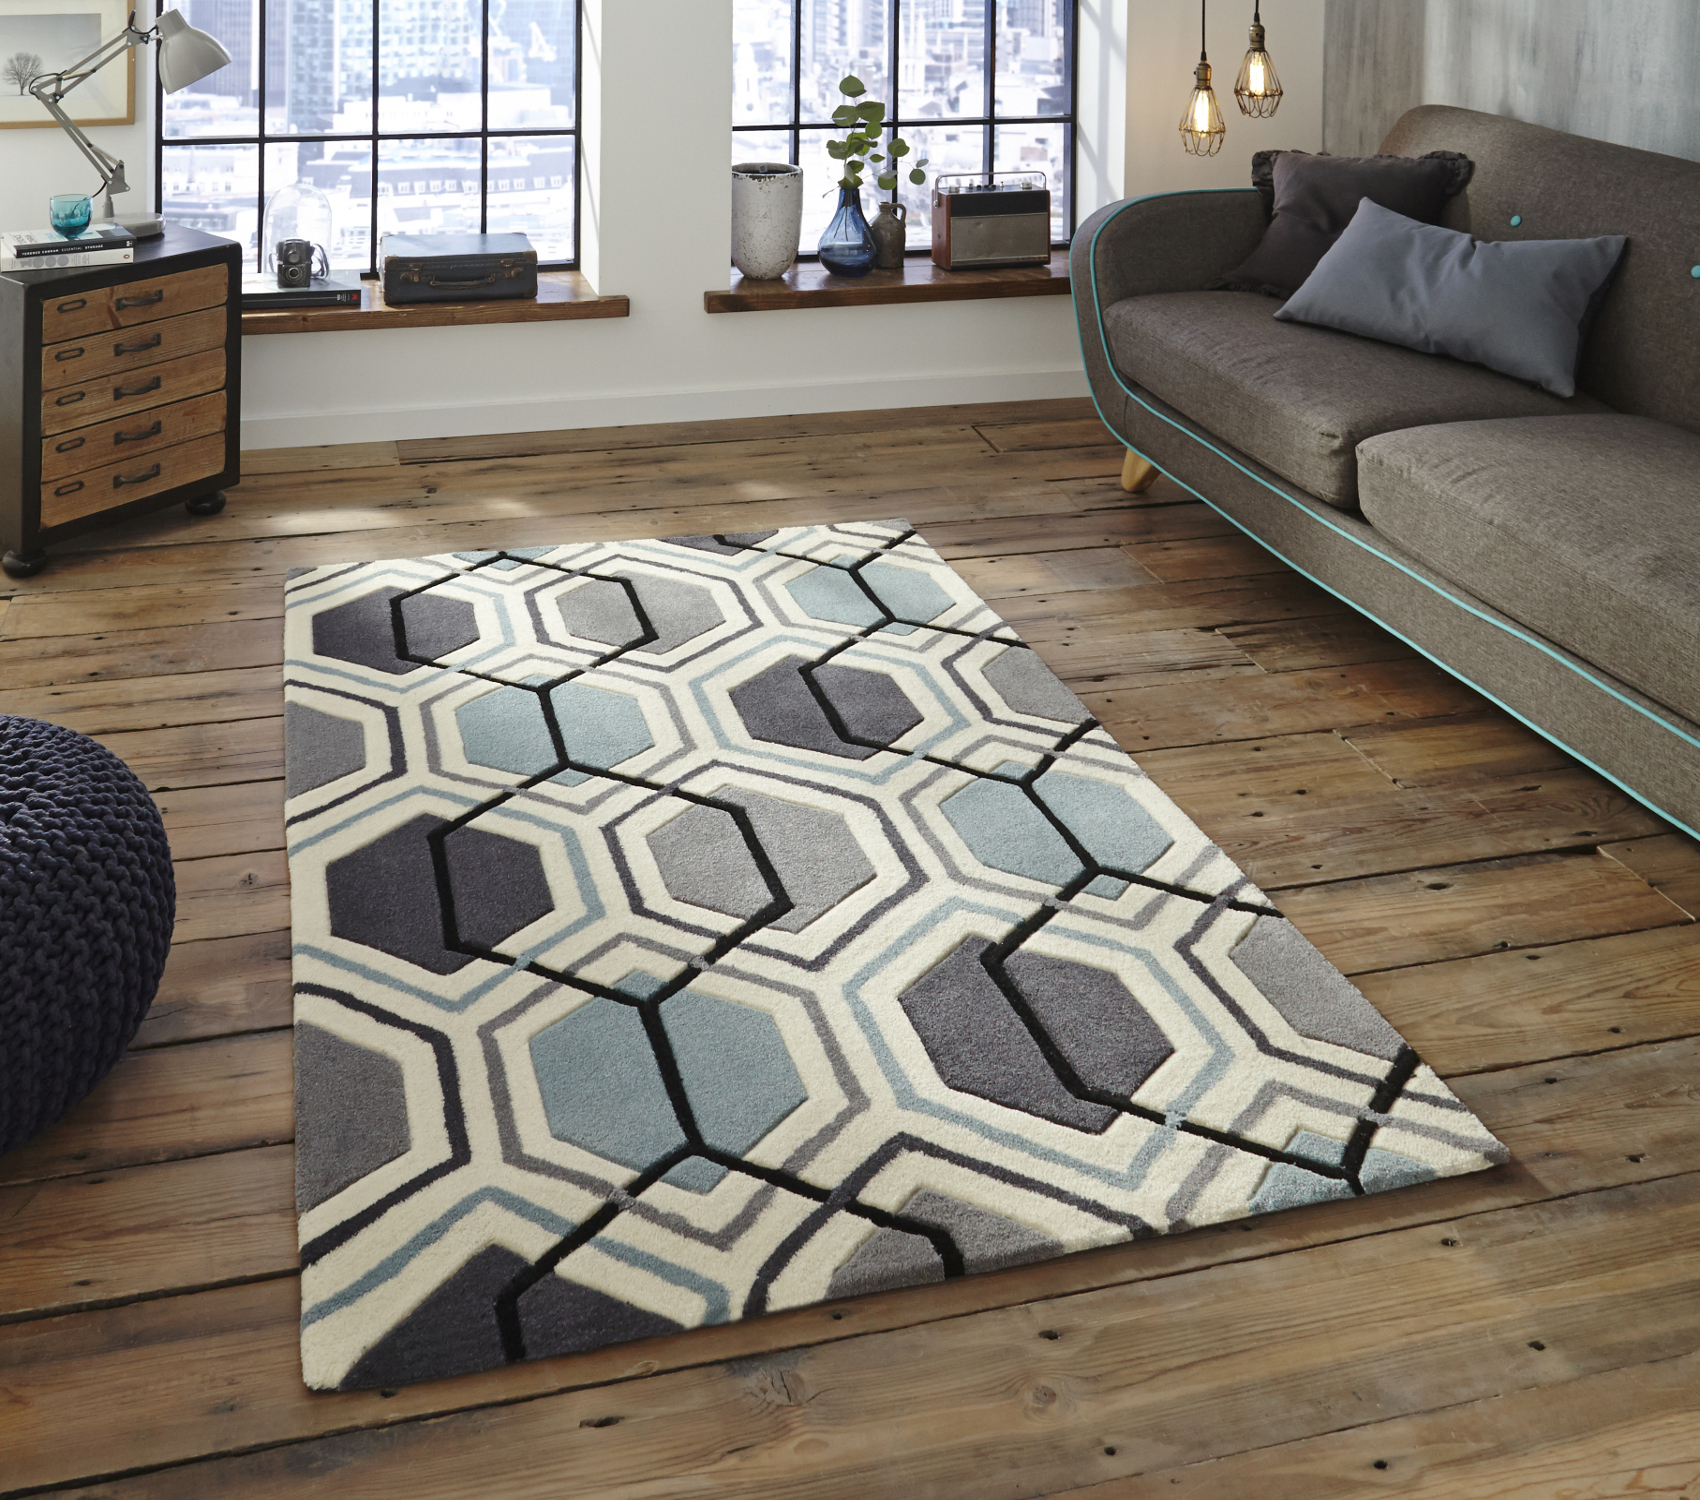 Hong Kong Hexagon Rug 100 Acrylic Hand Tufted Large